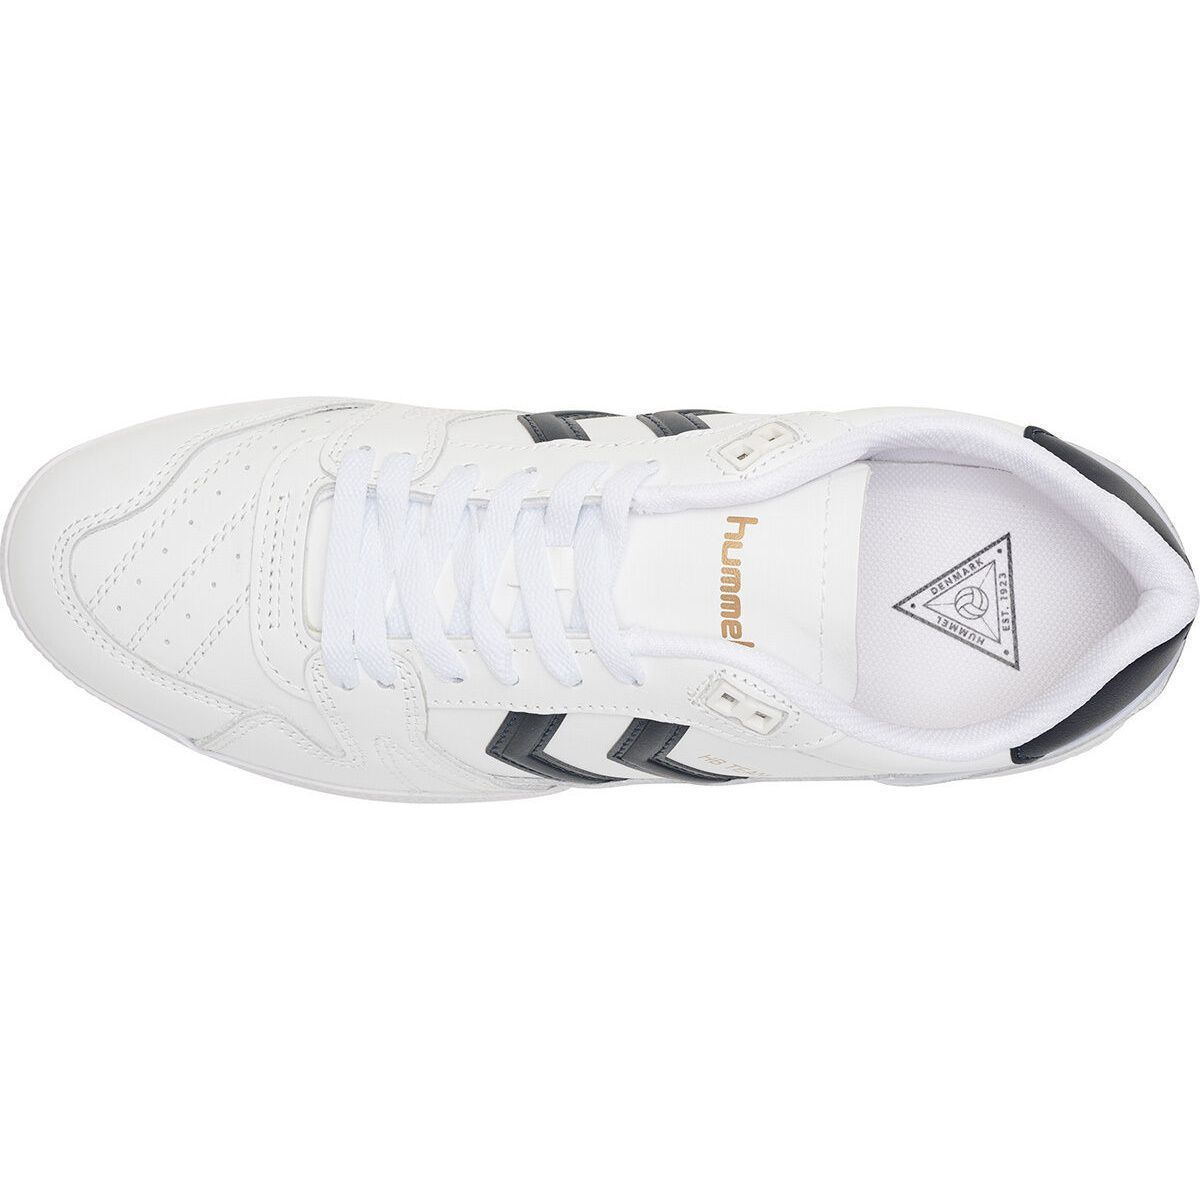 Hummel homme hb team leather blanc1284101_6